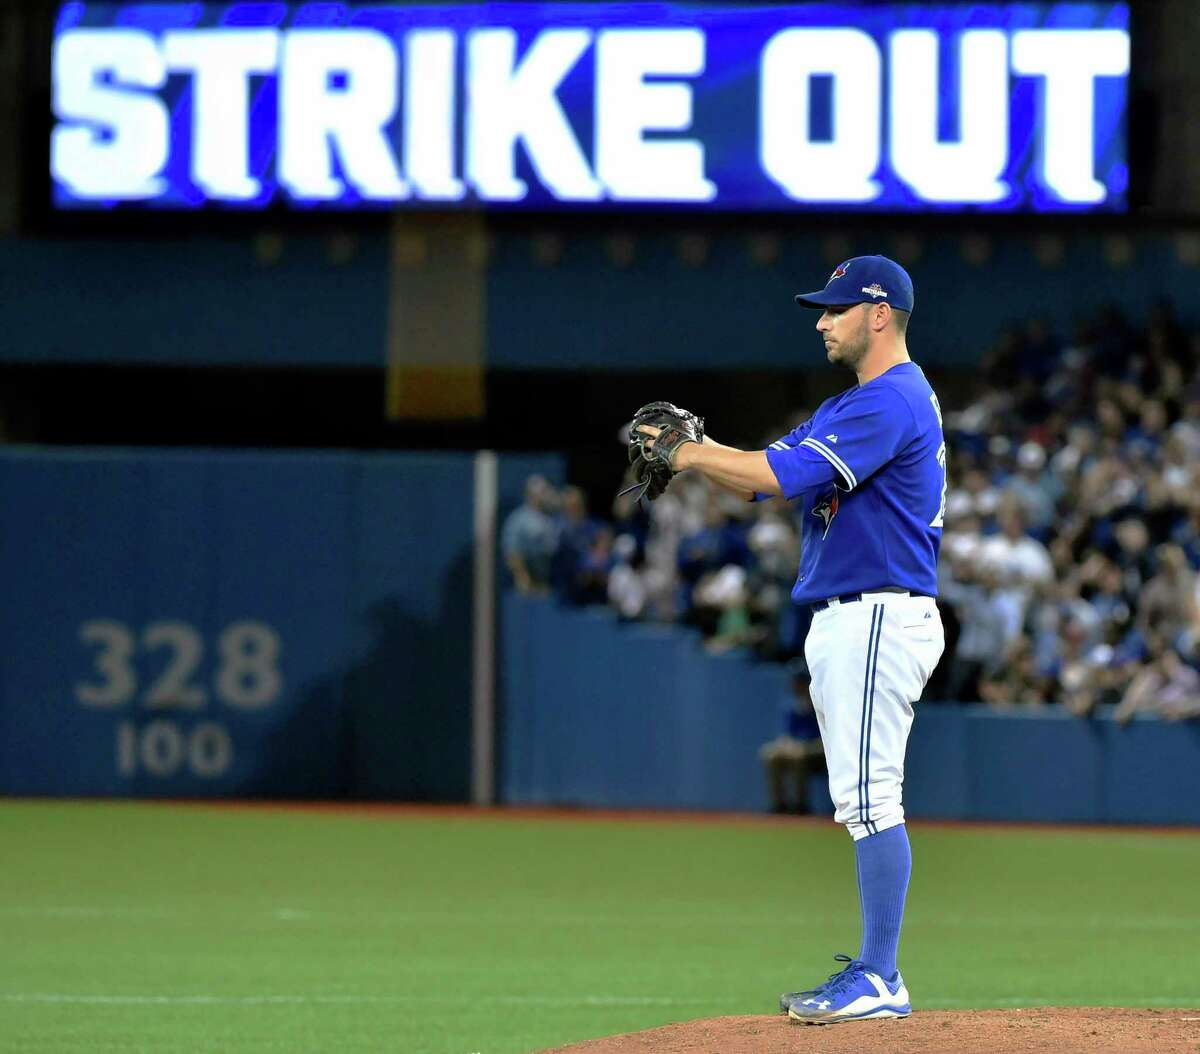 Toronto Blue Jays' starting pitcher Marco Estrada stands on the mound after striking out Kansas City Royals' Kendrys Morales during the eighth inning in Game 5 of baseball's American League Championship Series on Wednesday, Oct. 21, 2015, in Toronto. (Nathan Denette/The Canadian Press via AP) MANDATORY CREDIT